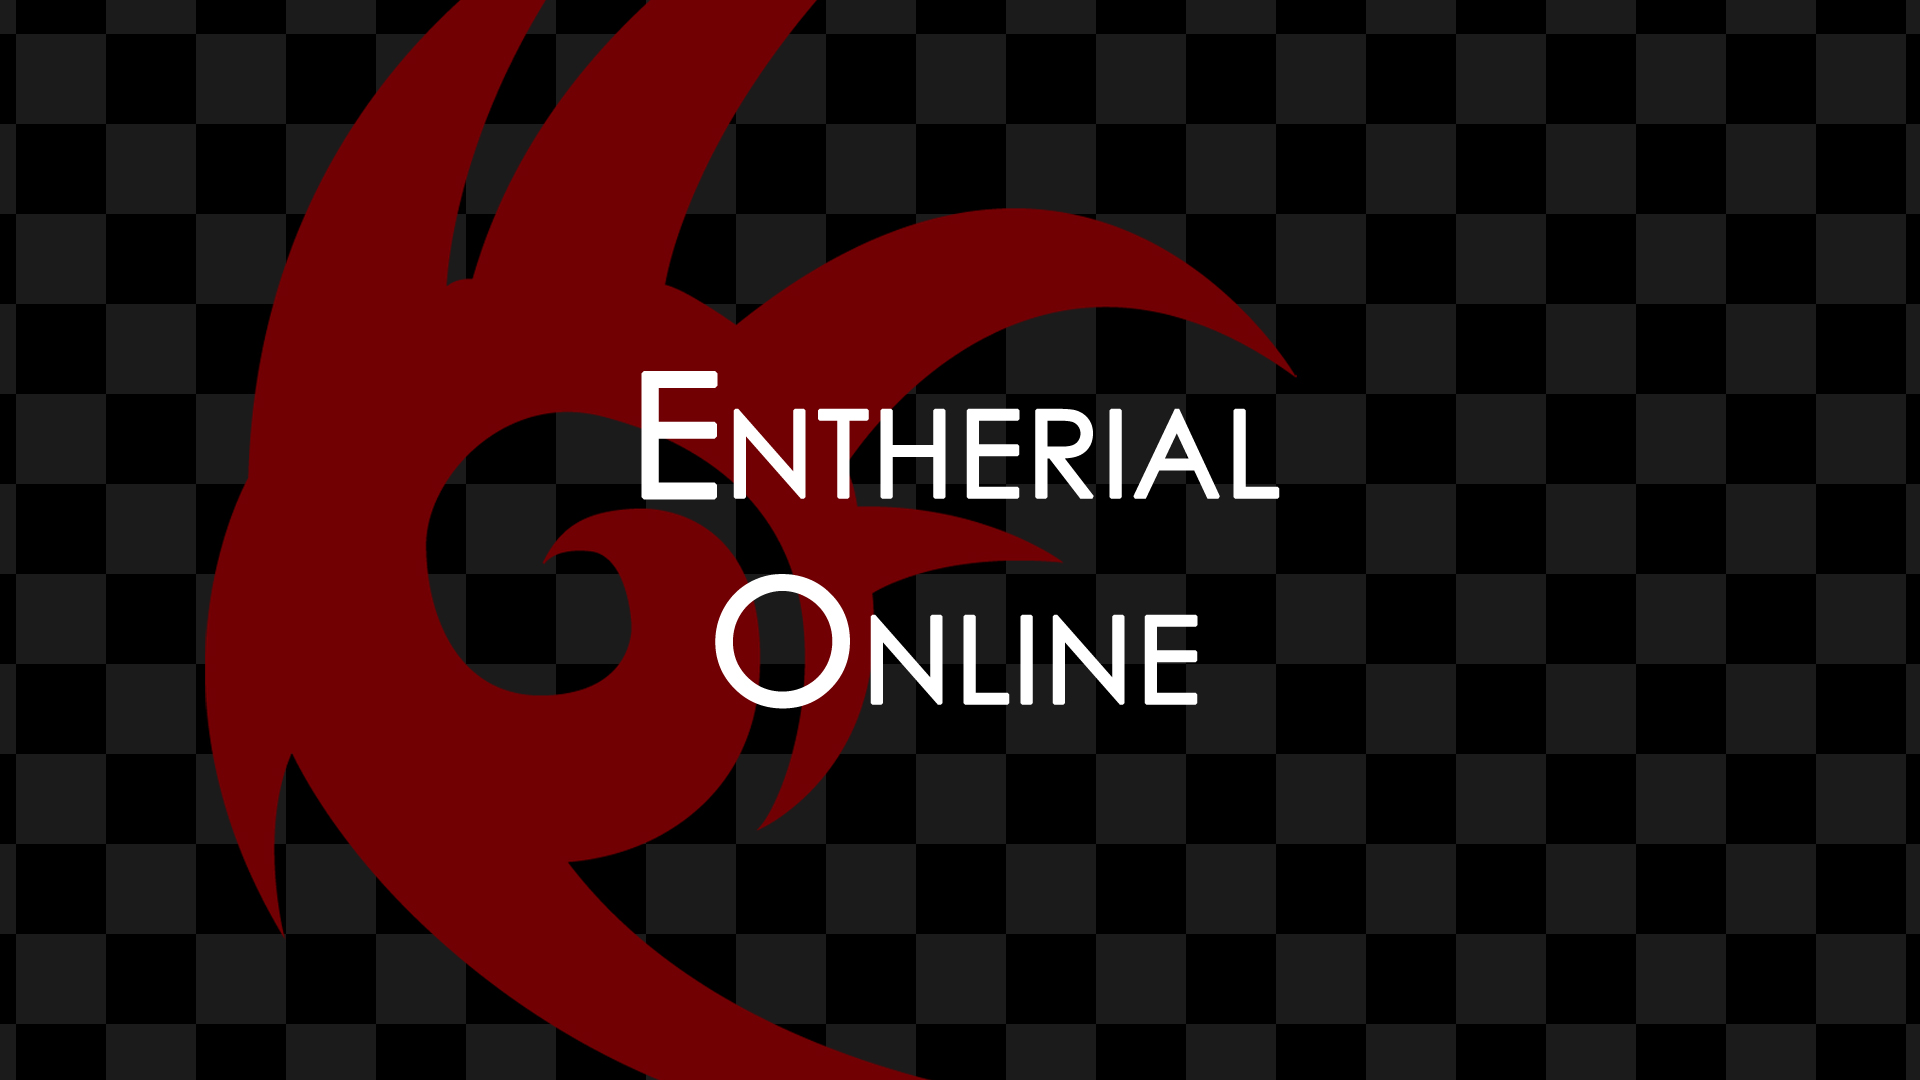 Entherial Online (E-On)